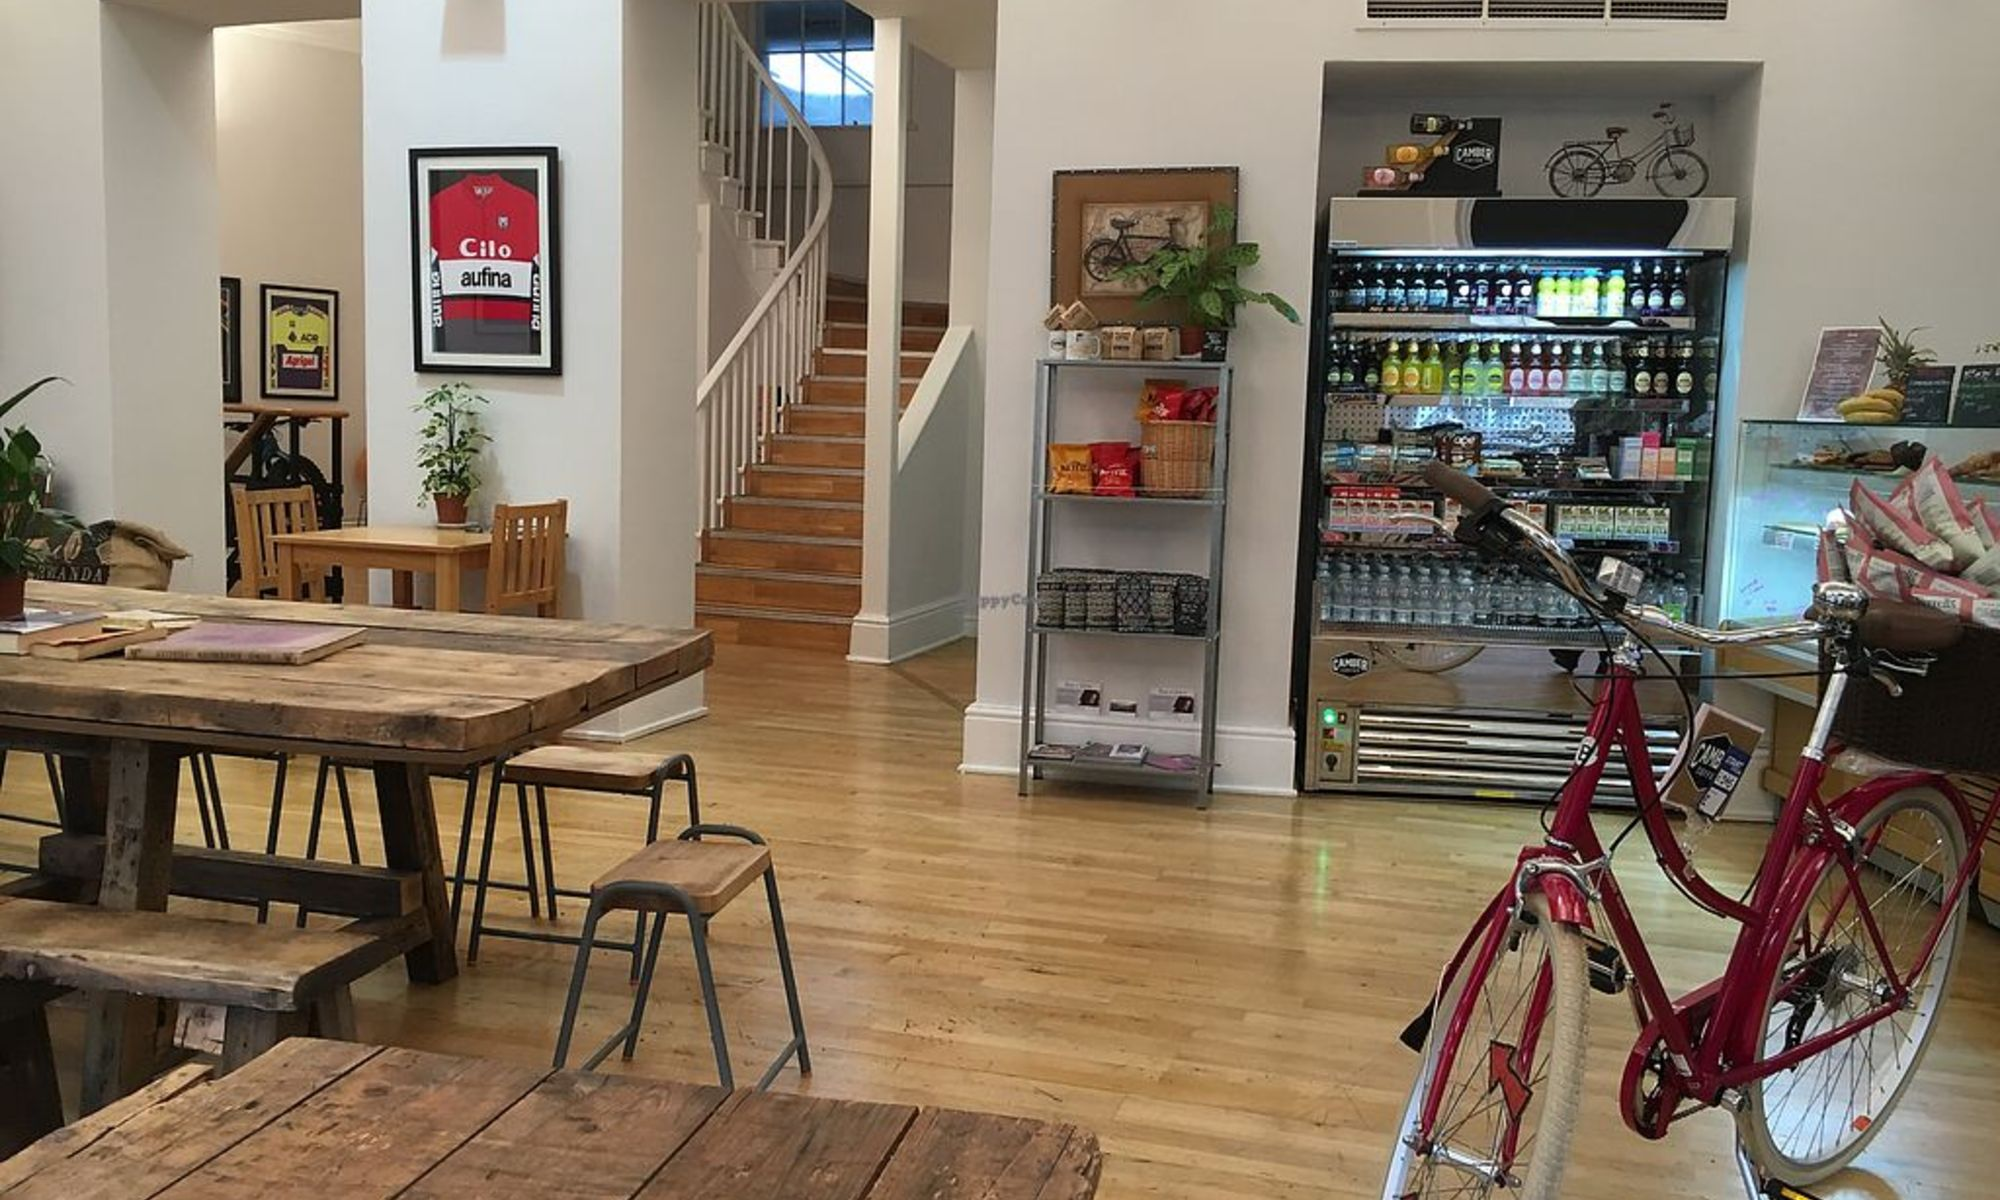 Camber Coffee study places Newcastle